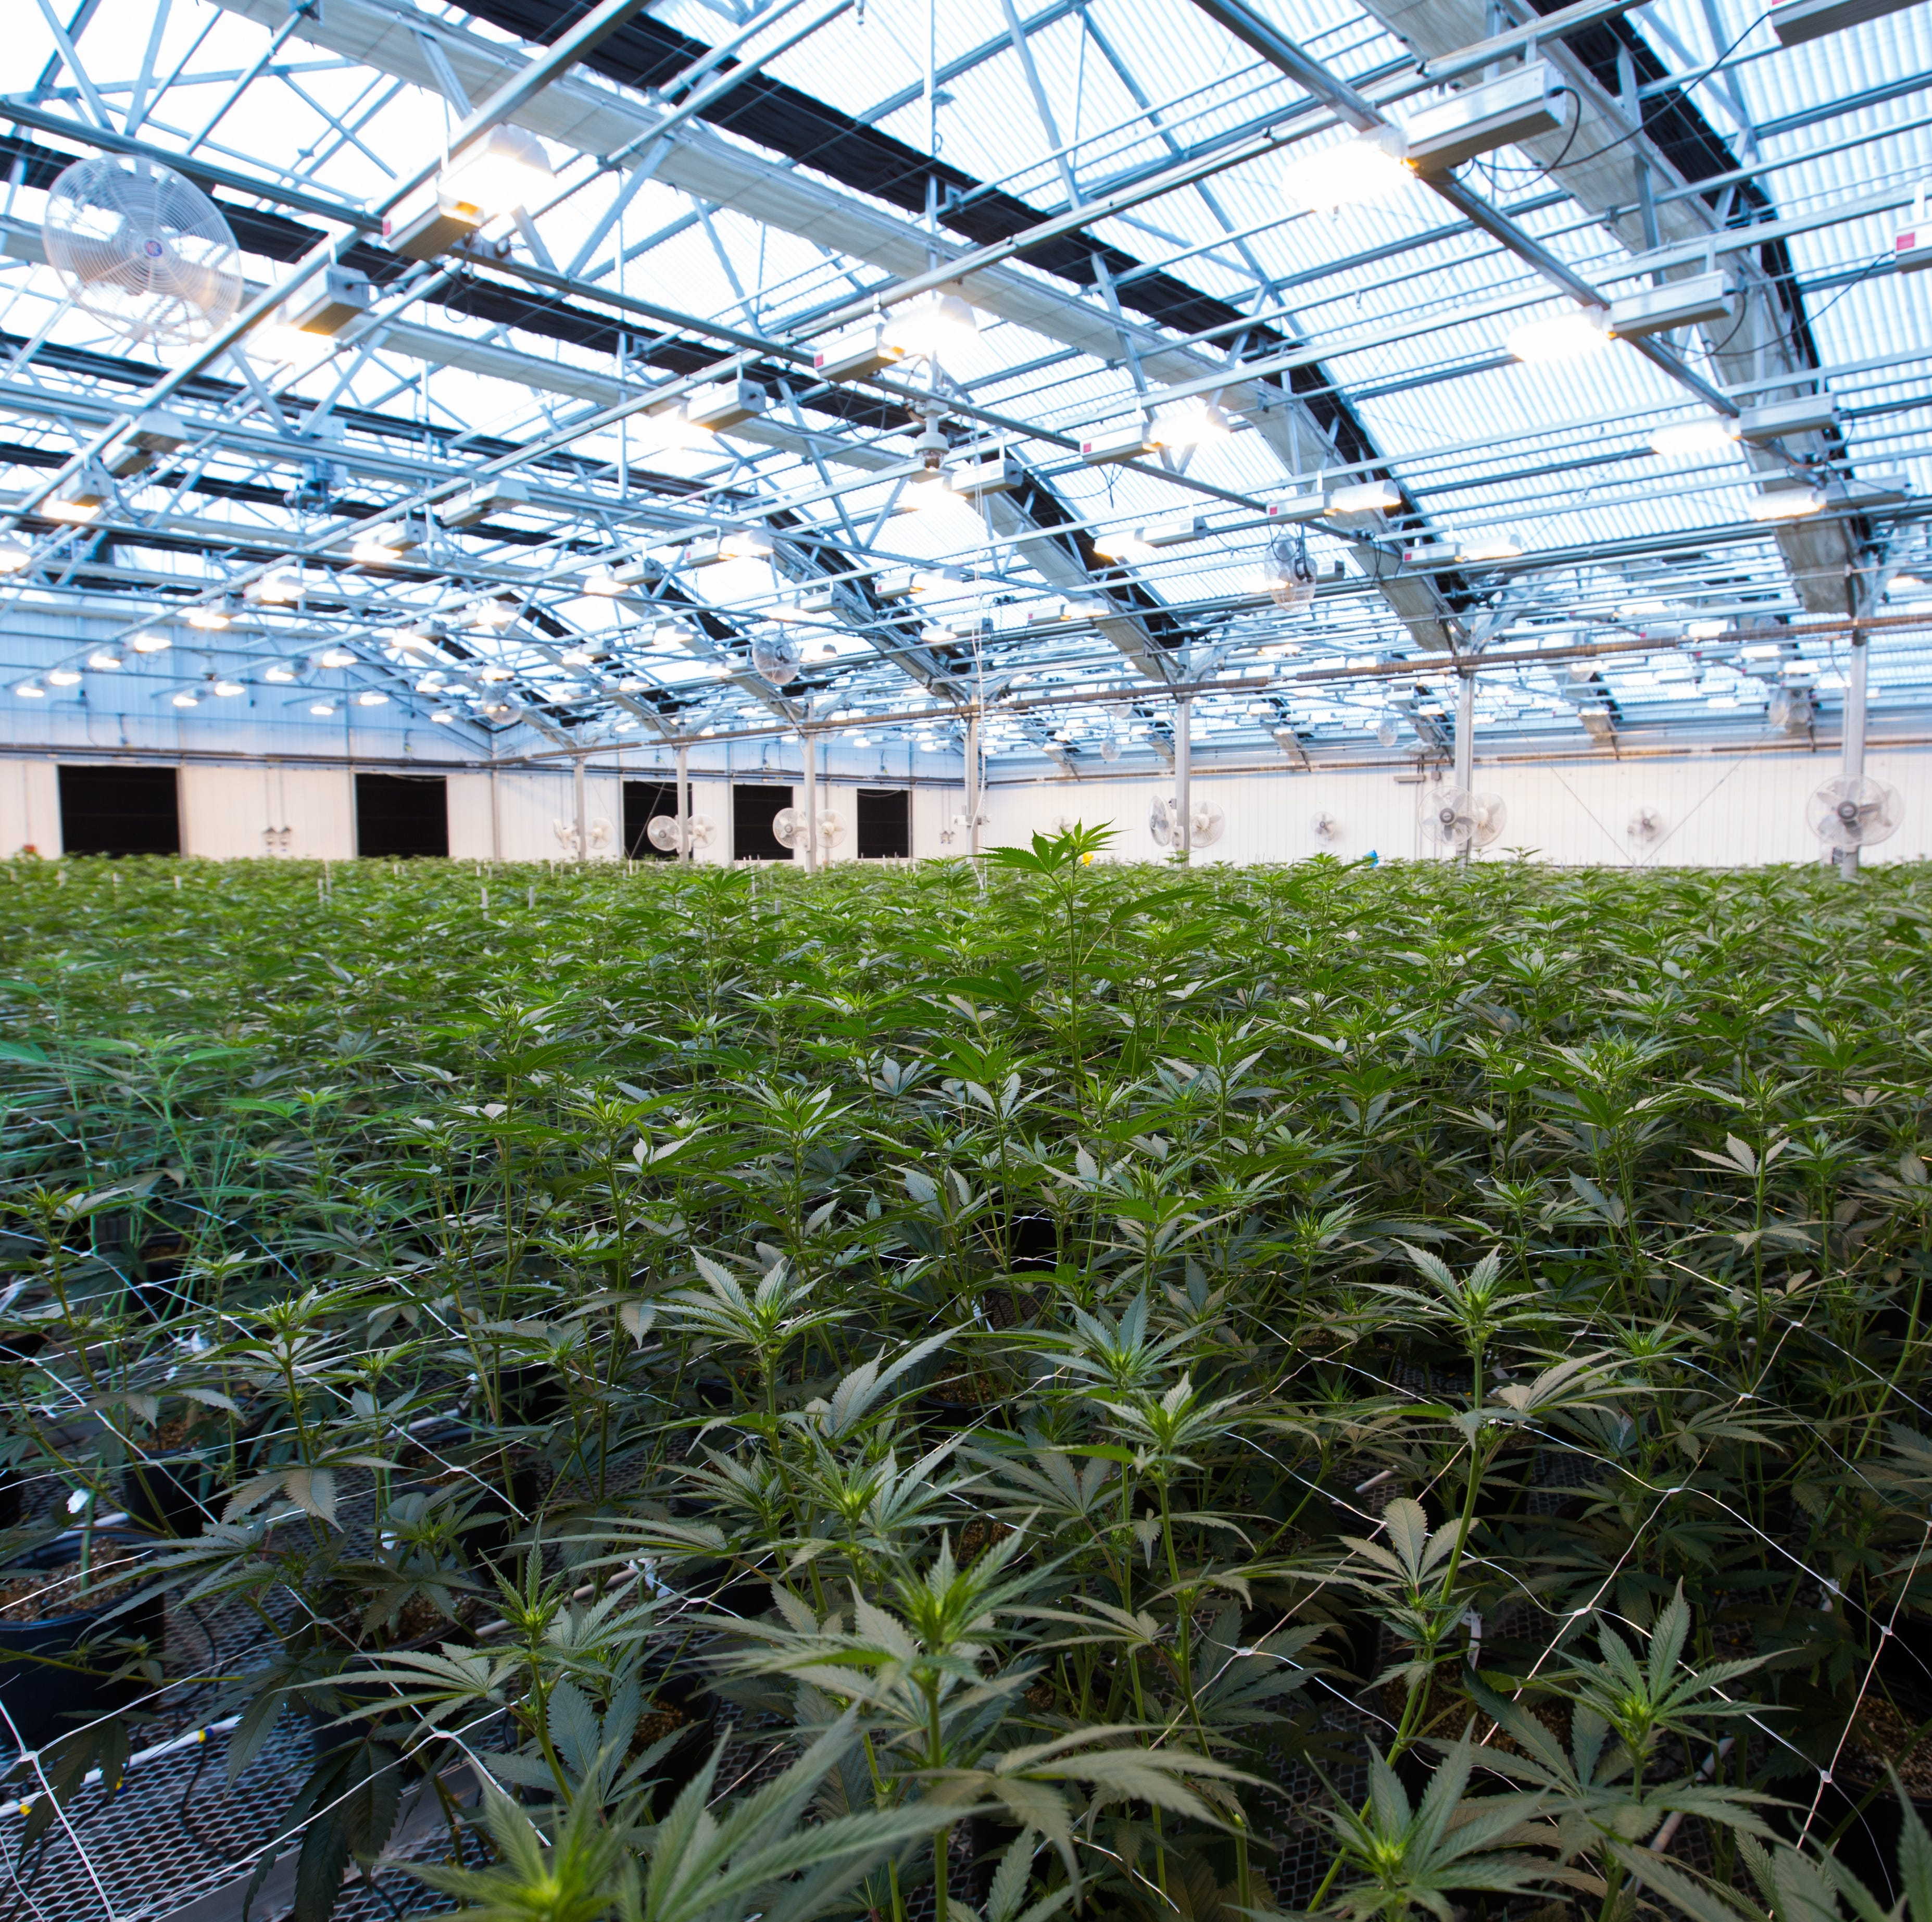 The business of growing pot, legally